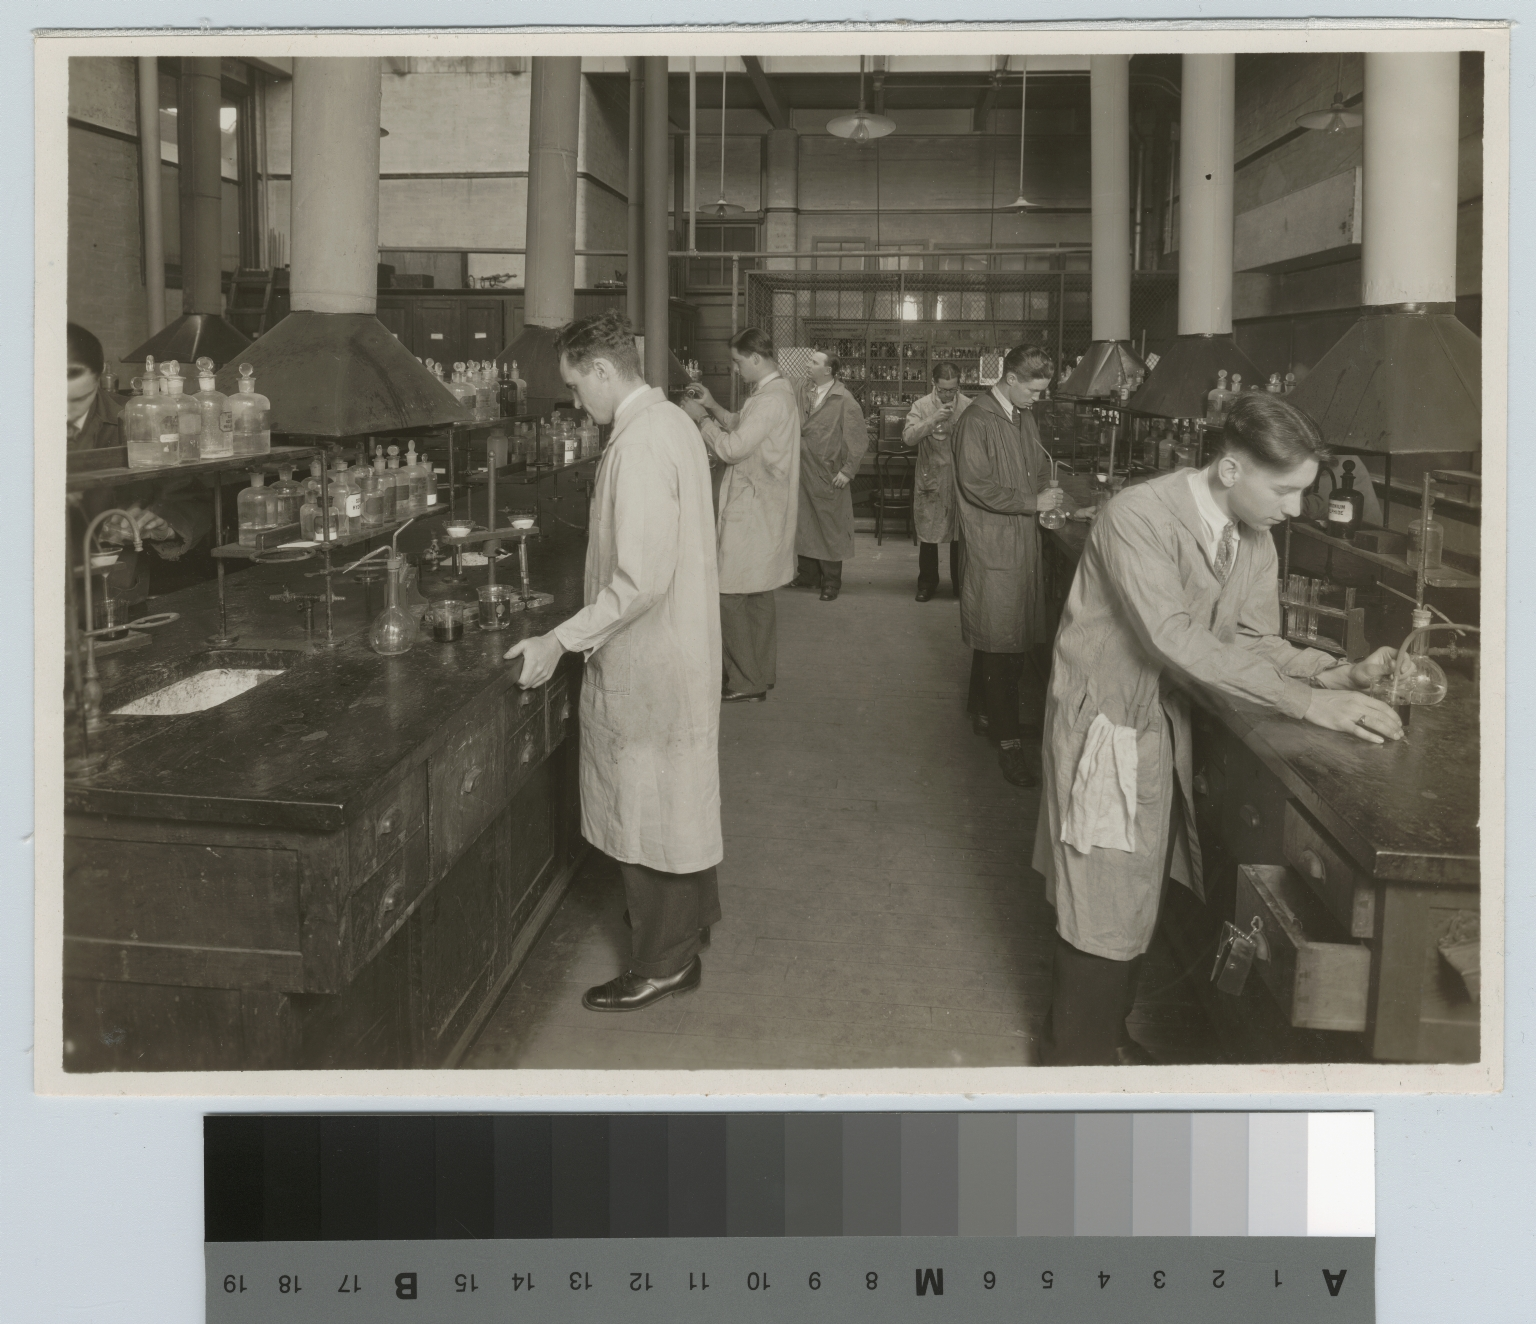 Academics, chemistry, Rochester Athenaeum and Mechanics Institute chemistry laboratory with male students working on experiments, [1927-1928]